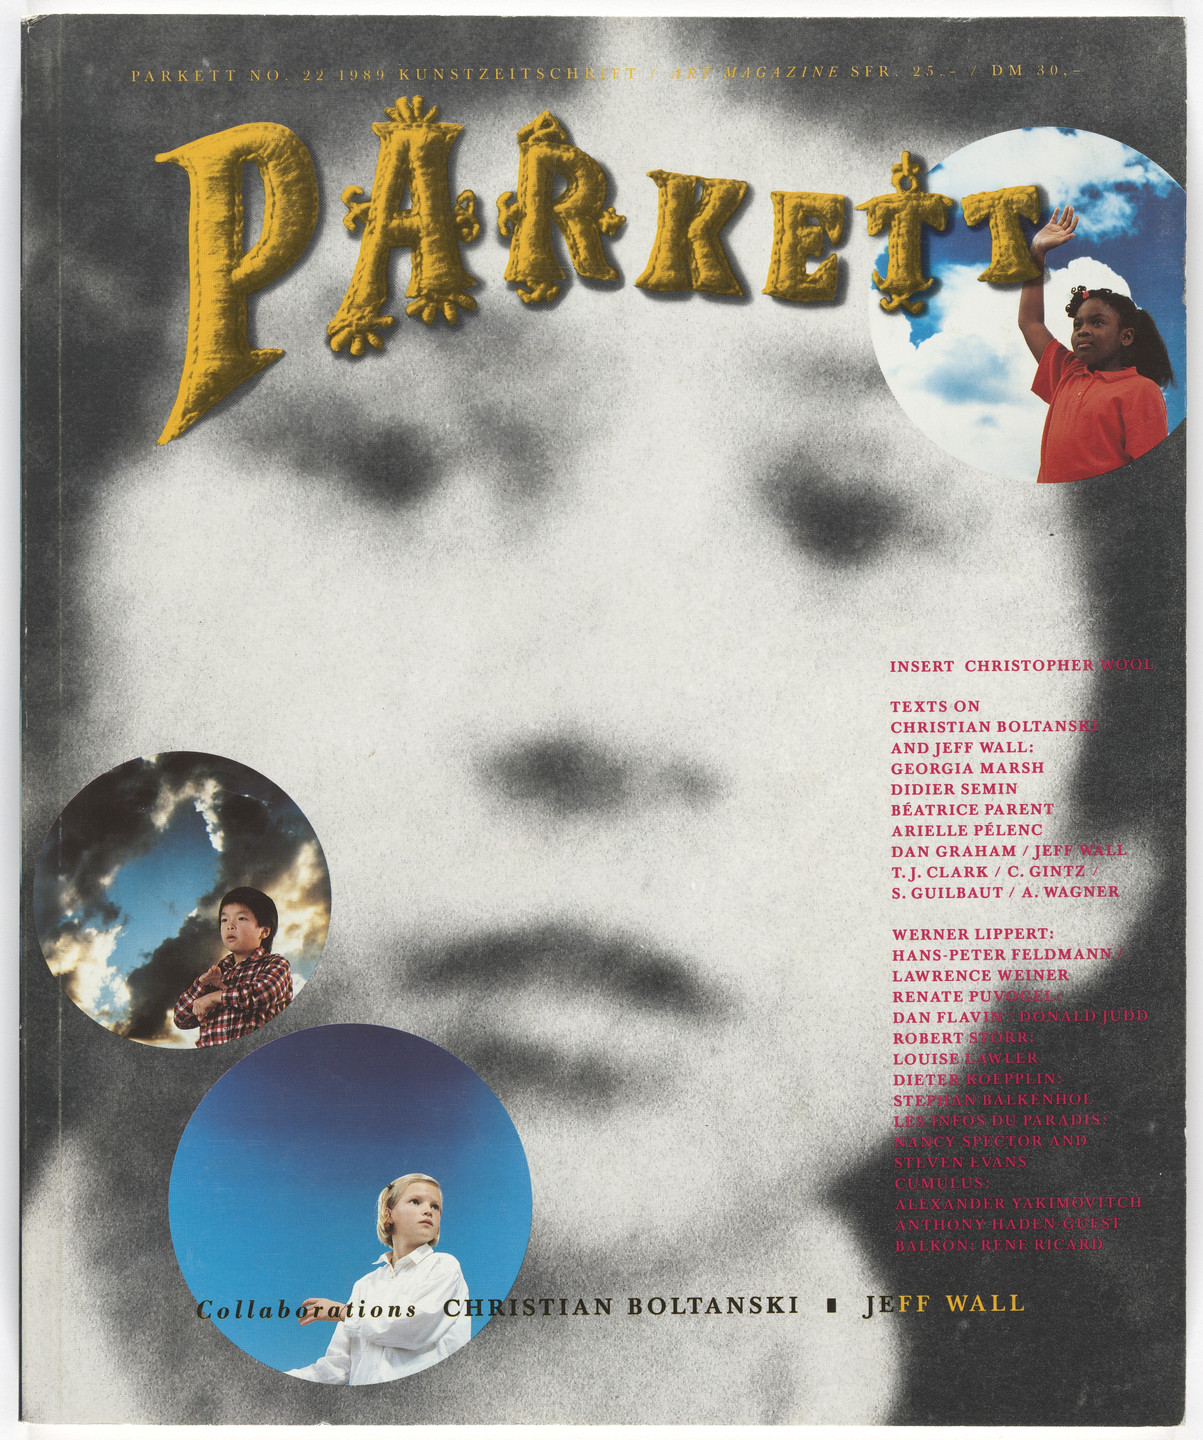 Christian Boltanski, Jeff Wall, Christopher Wool, Ross Bleckner, Various Artists. Parkett no. 22. 1989